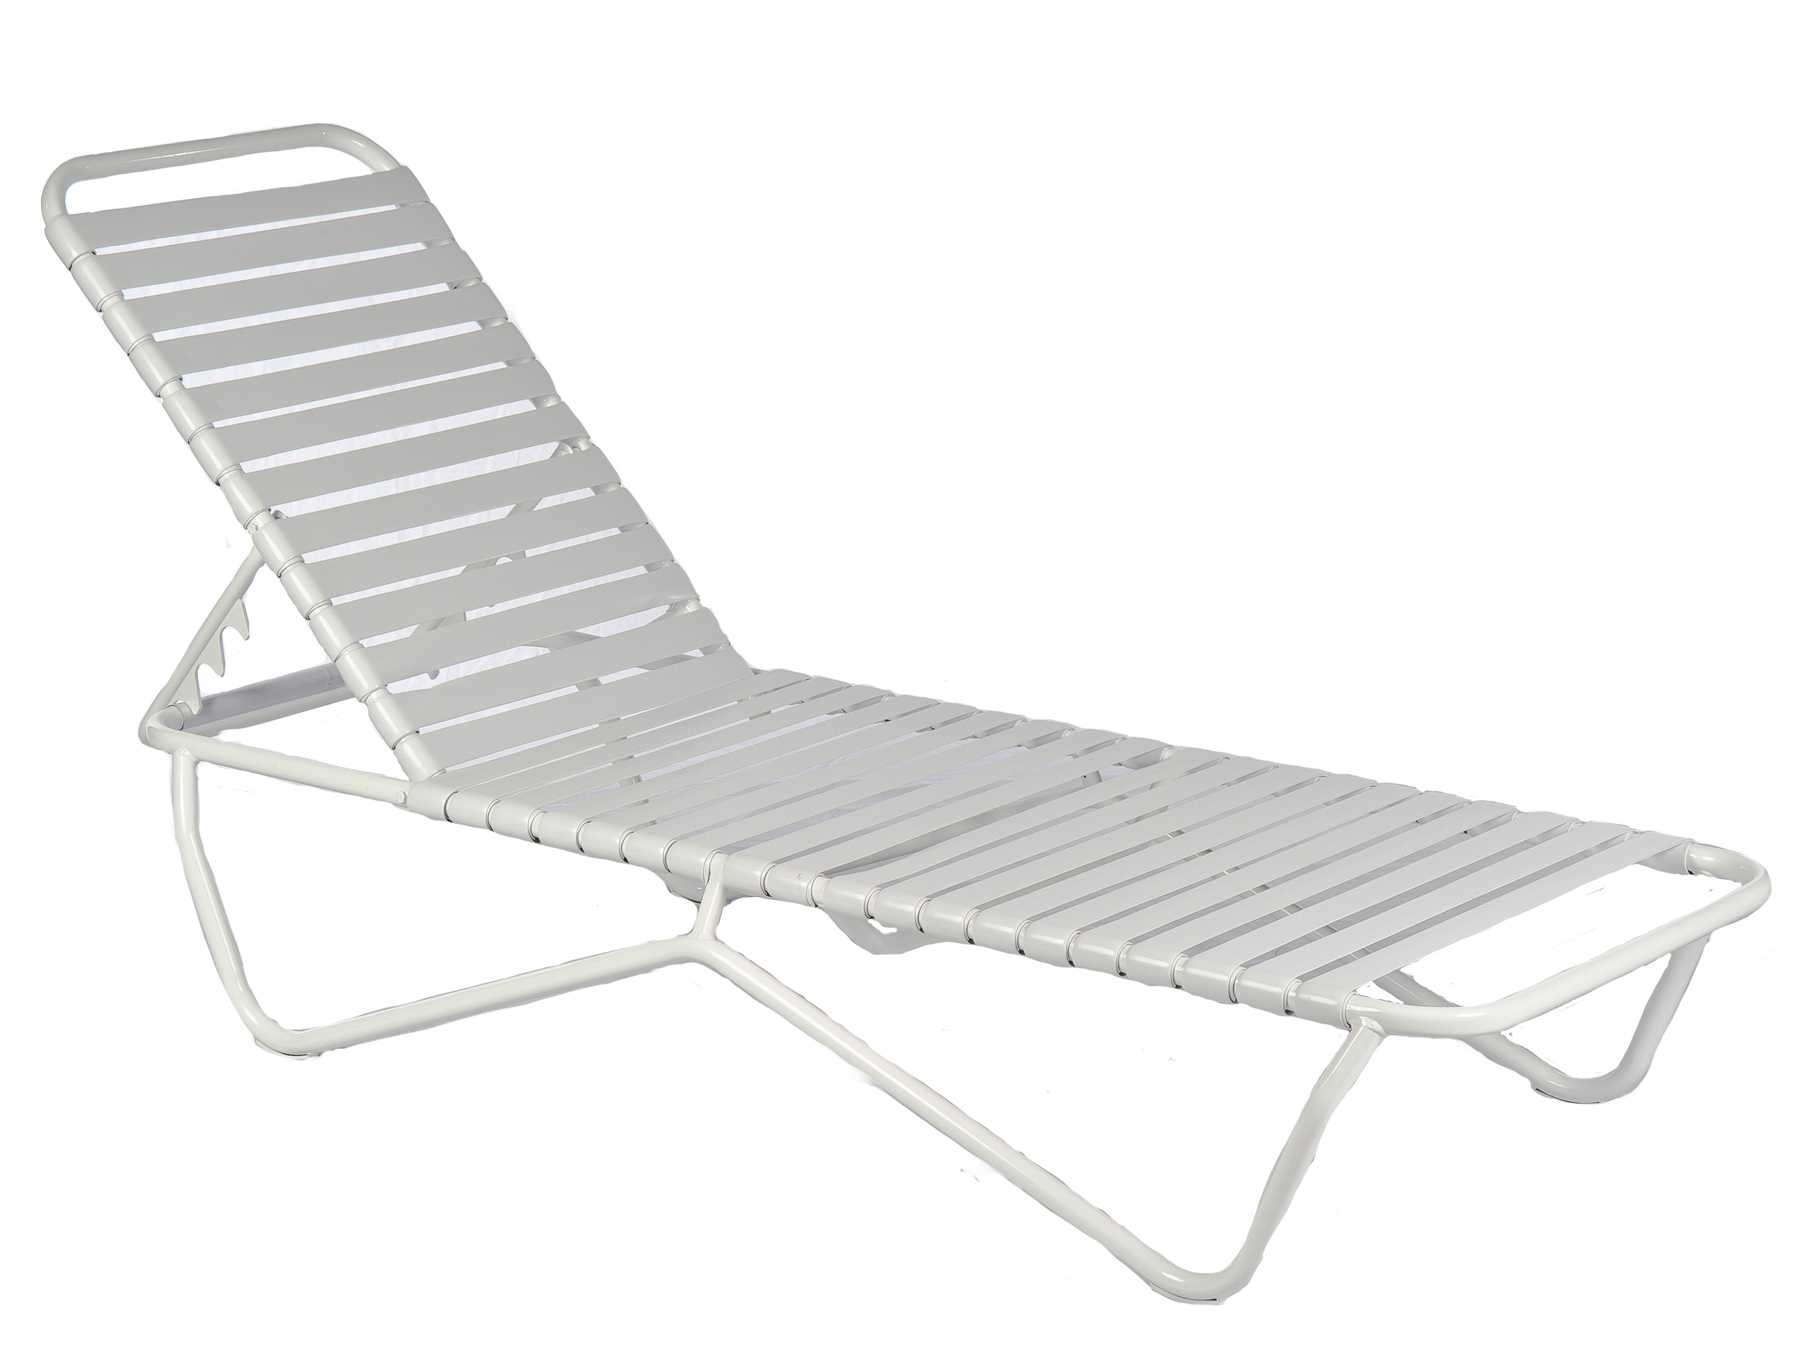 Frankford umbrellas commercial furniture strap chaise lounge for Chaise furniture commercial